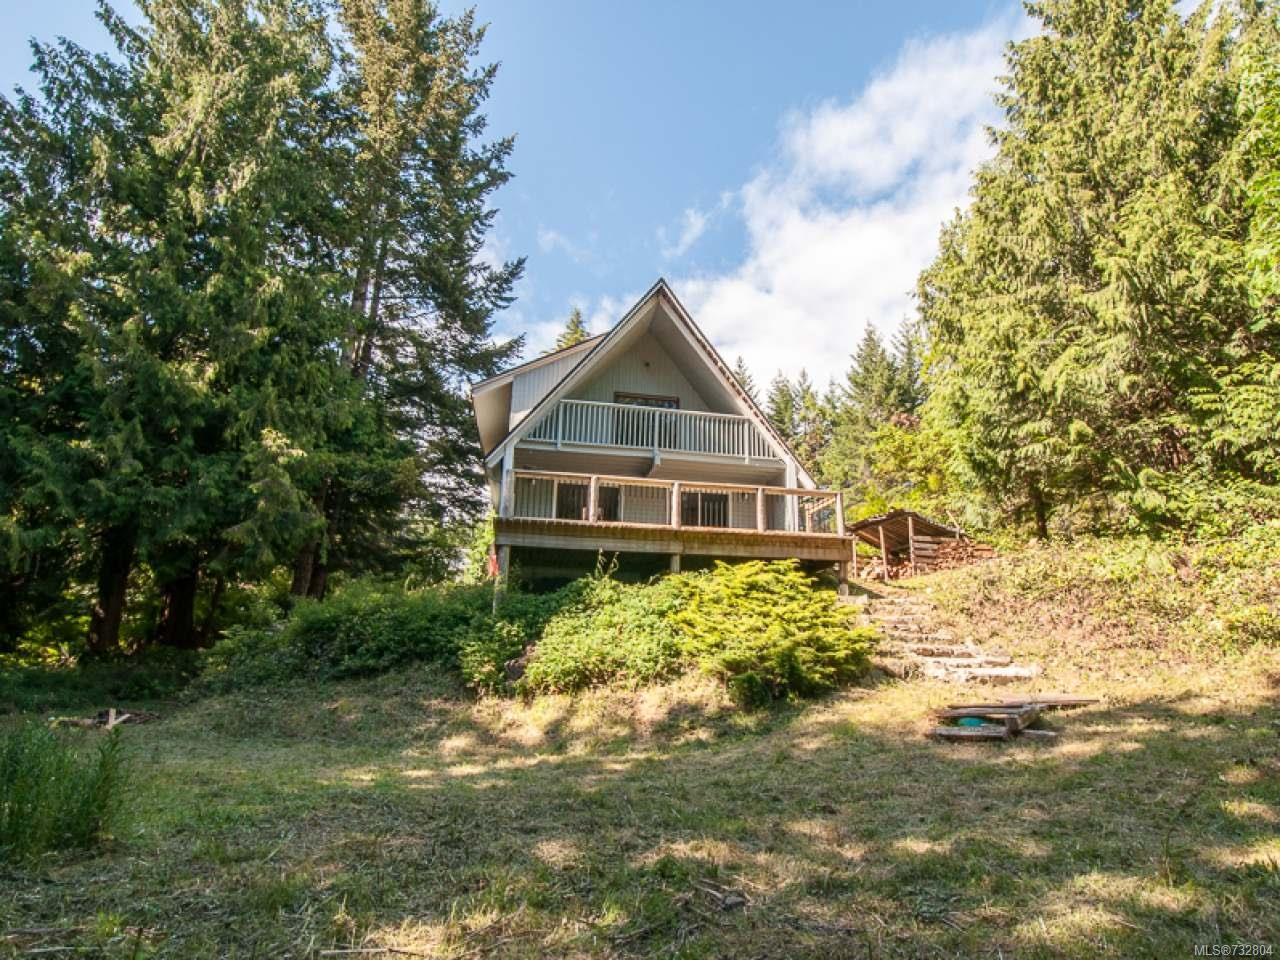 FEATURED LISTING: 2880 Transtide Dr NANOOSE BAY